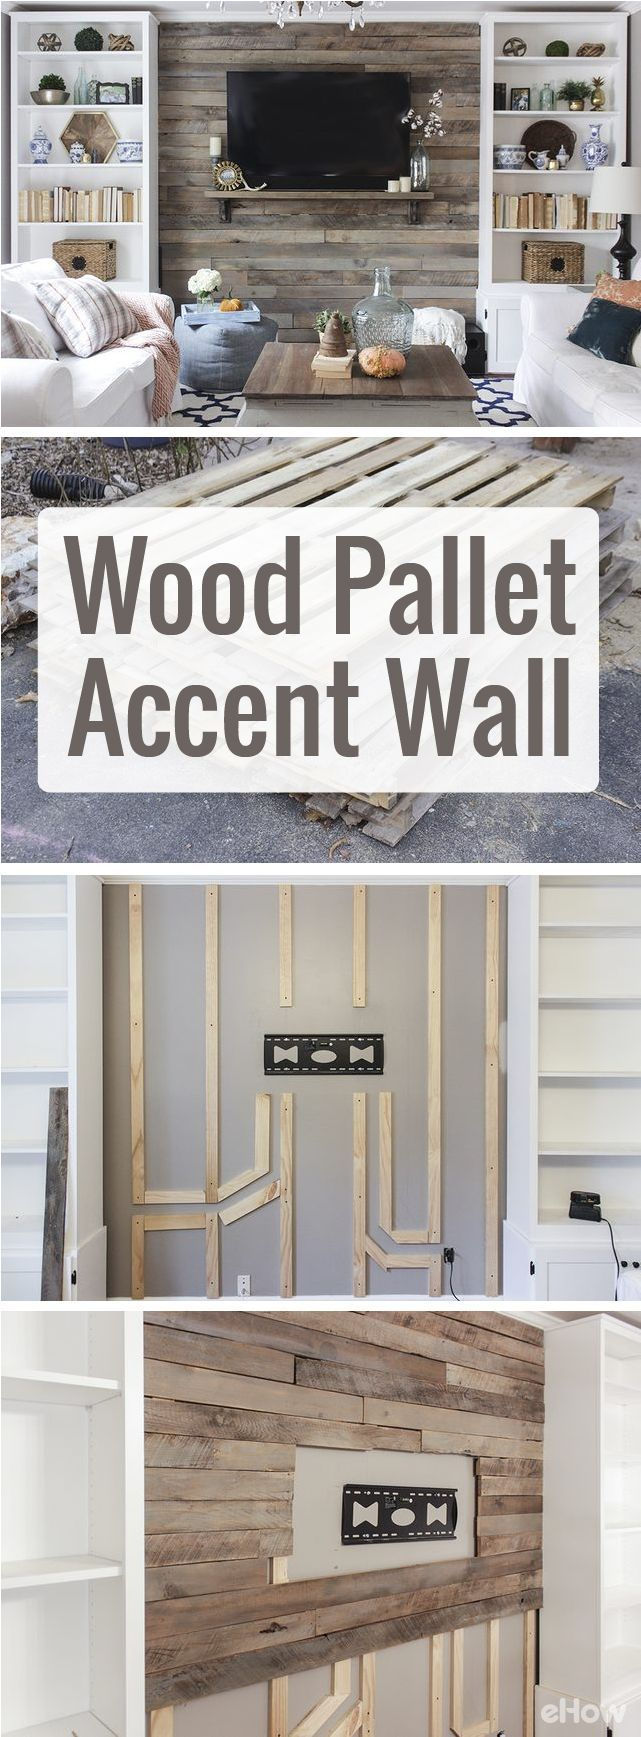 Window wall design ideas pinterest nyc home and accent walls - Drastically Change The Look And Feel Of Your Living Room With A Beautiful Wood Pallet Accent Wall Using Pallets Makes This Home Makeover So